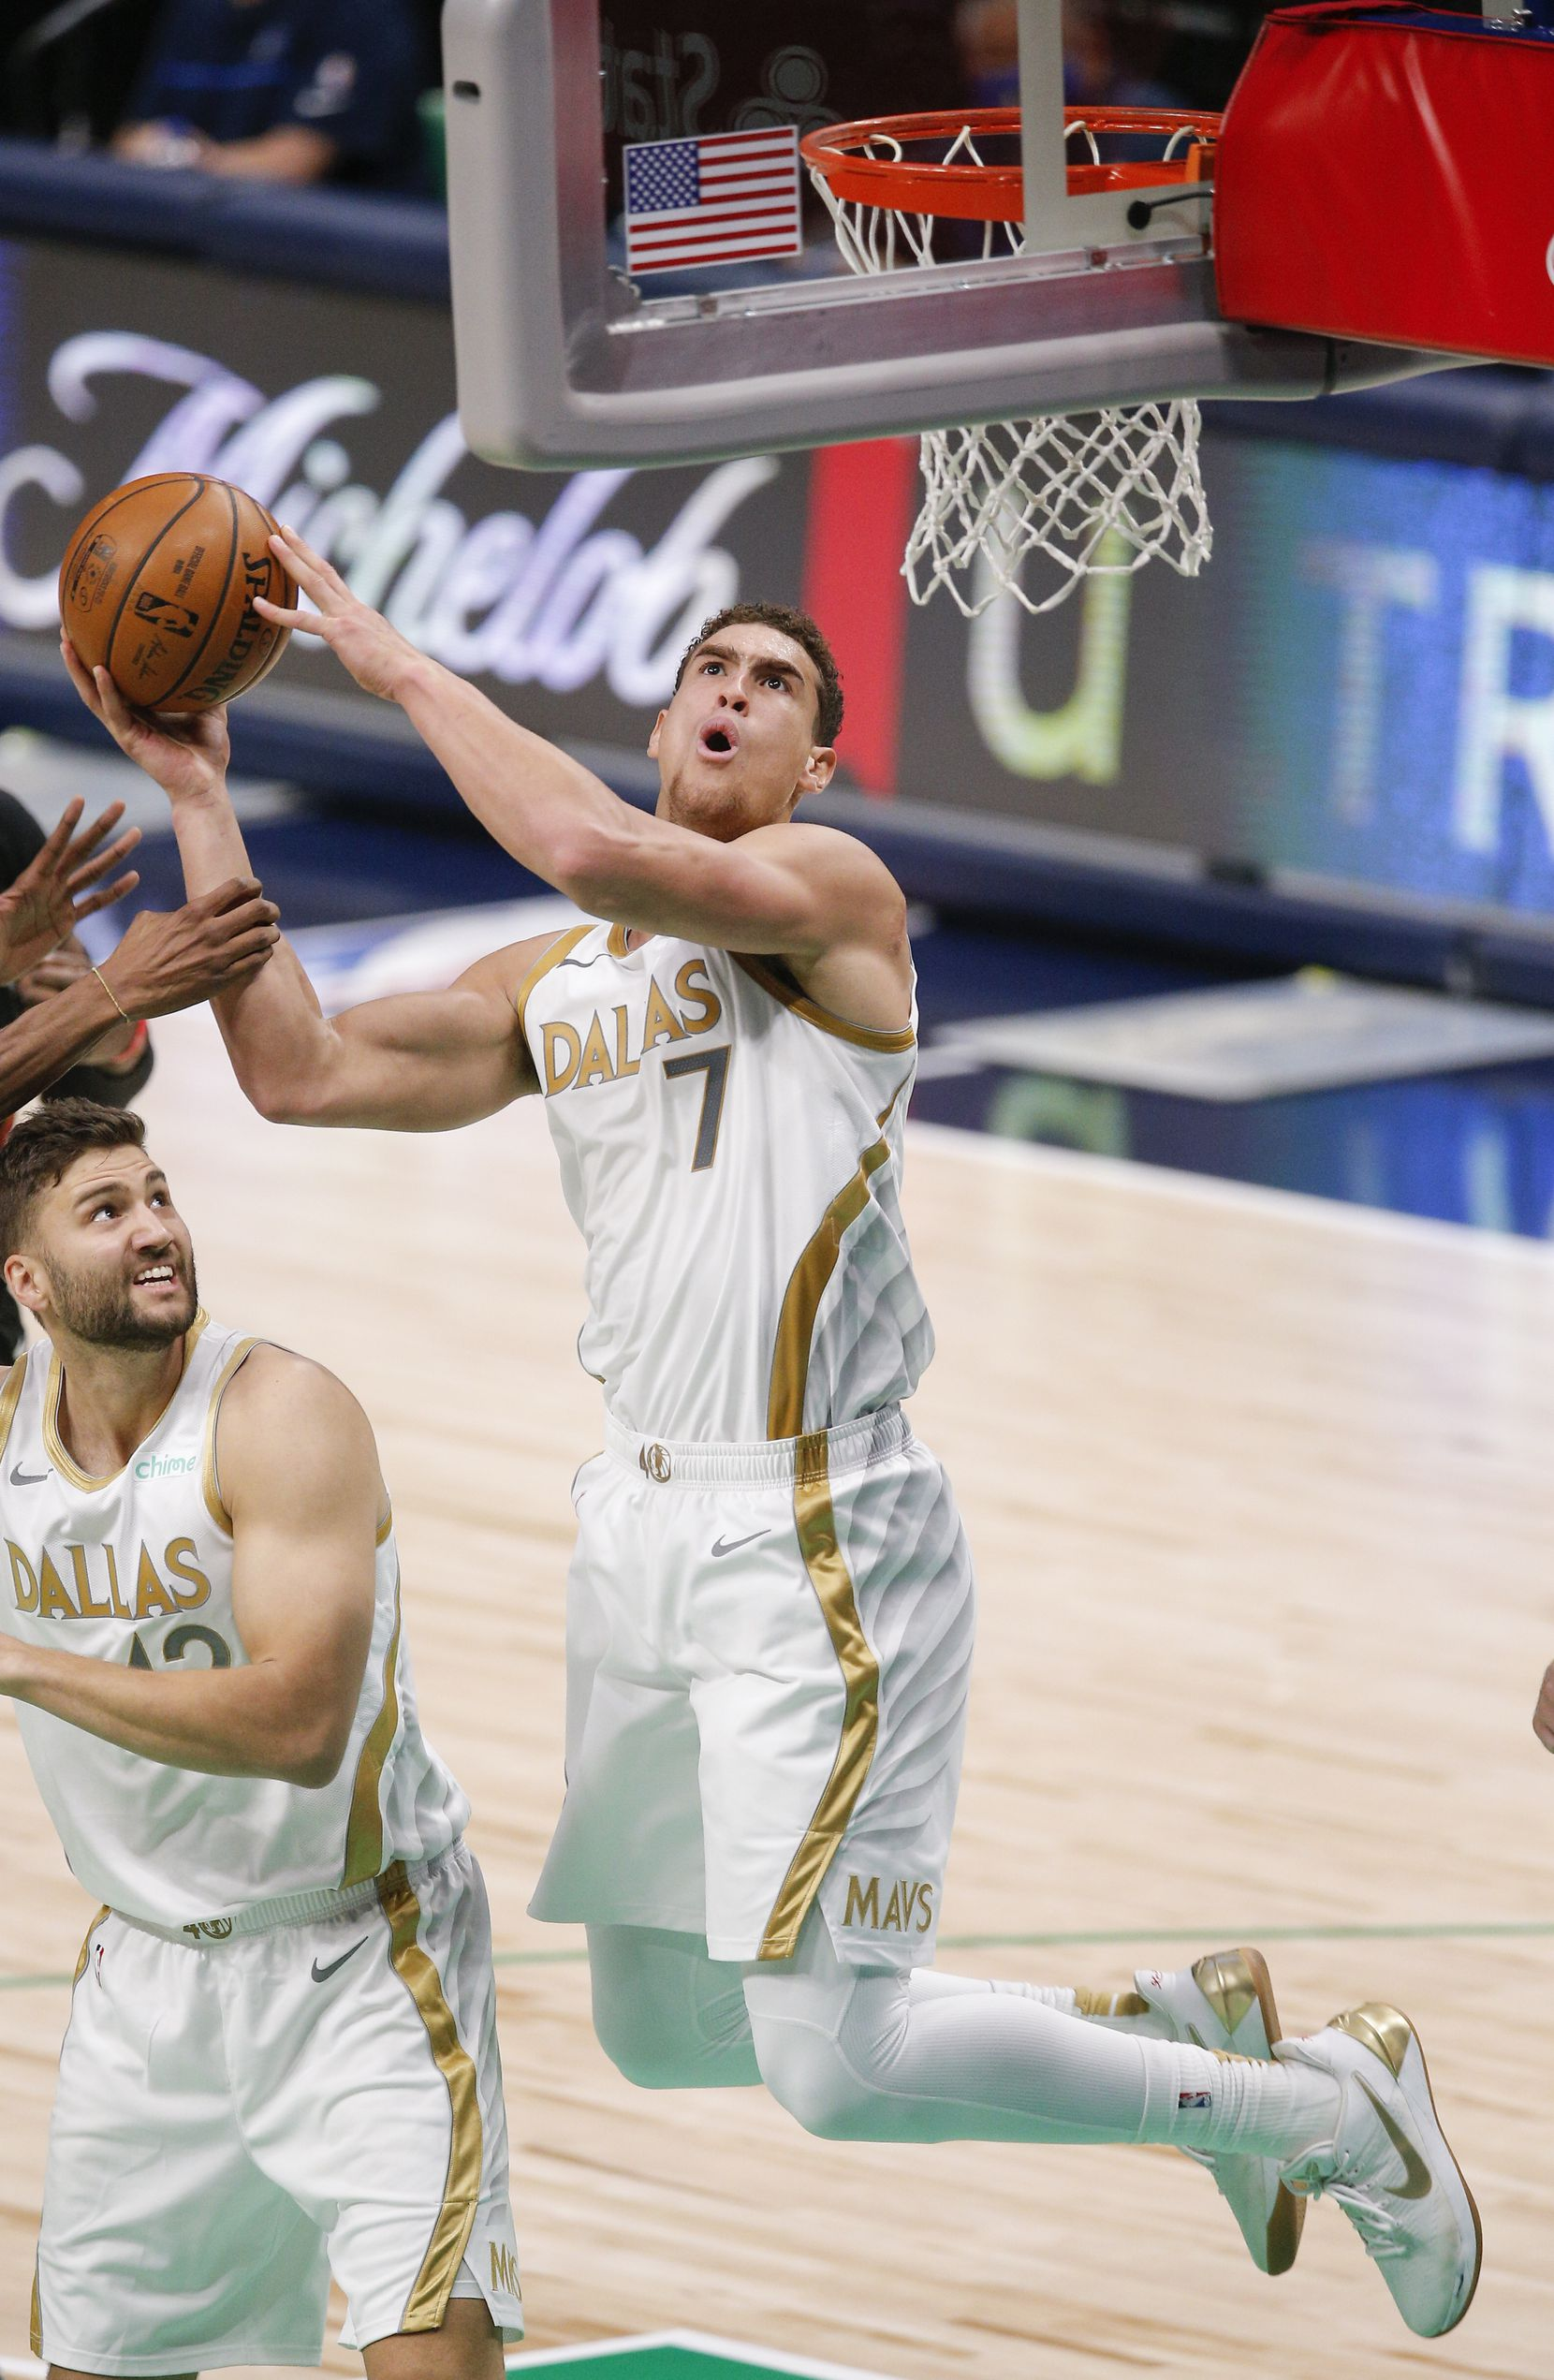 Dallas Mavericks forward Dwight Powell (7) attempts a shot during the first half of an NBA basketball game against the Miami Heat, Friday, January 1, 2021. (Brandon Wade/Special Contributor)